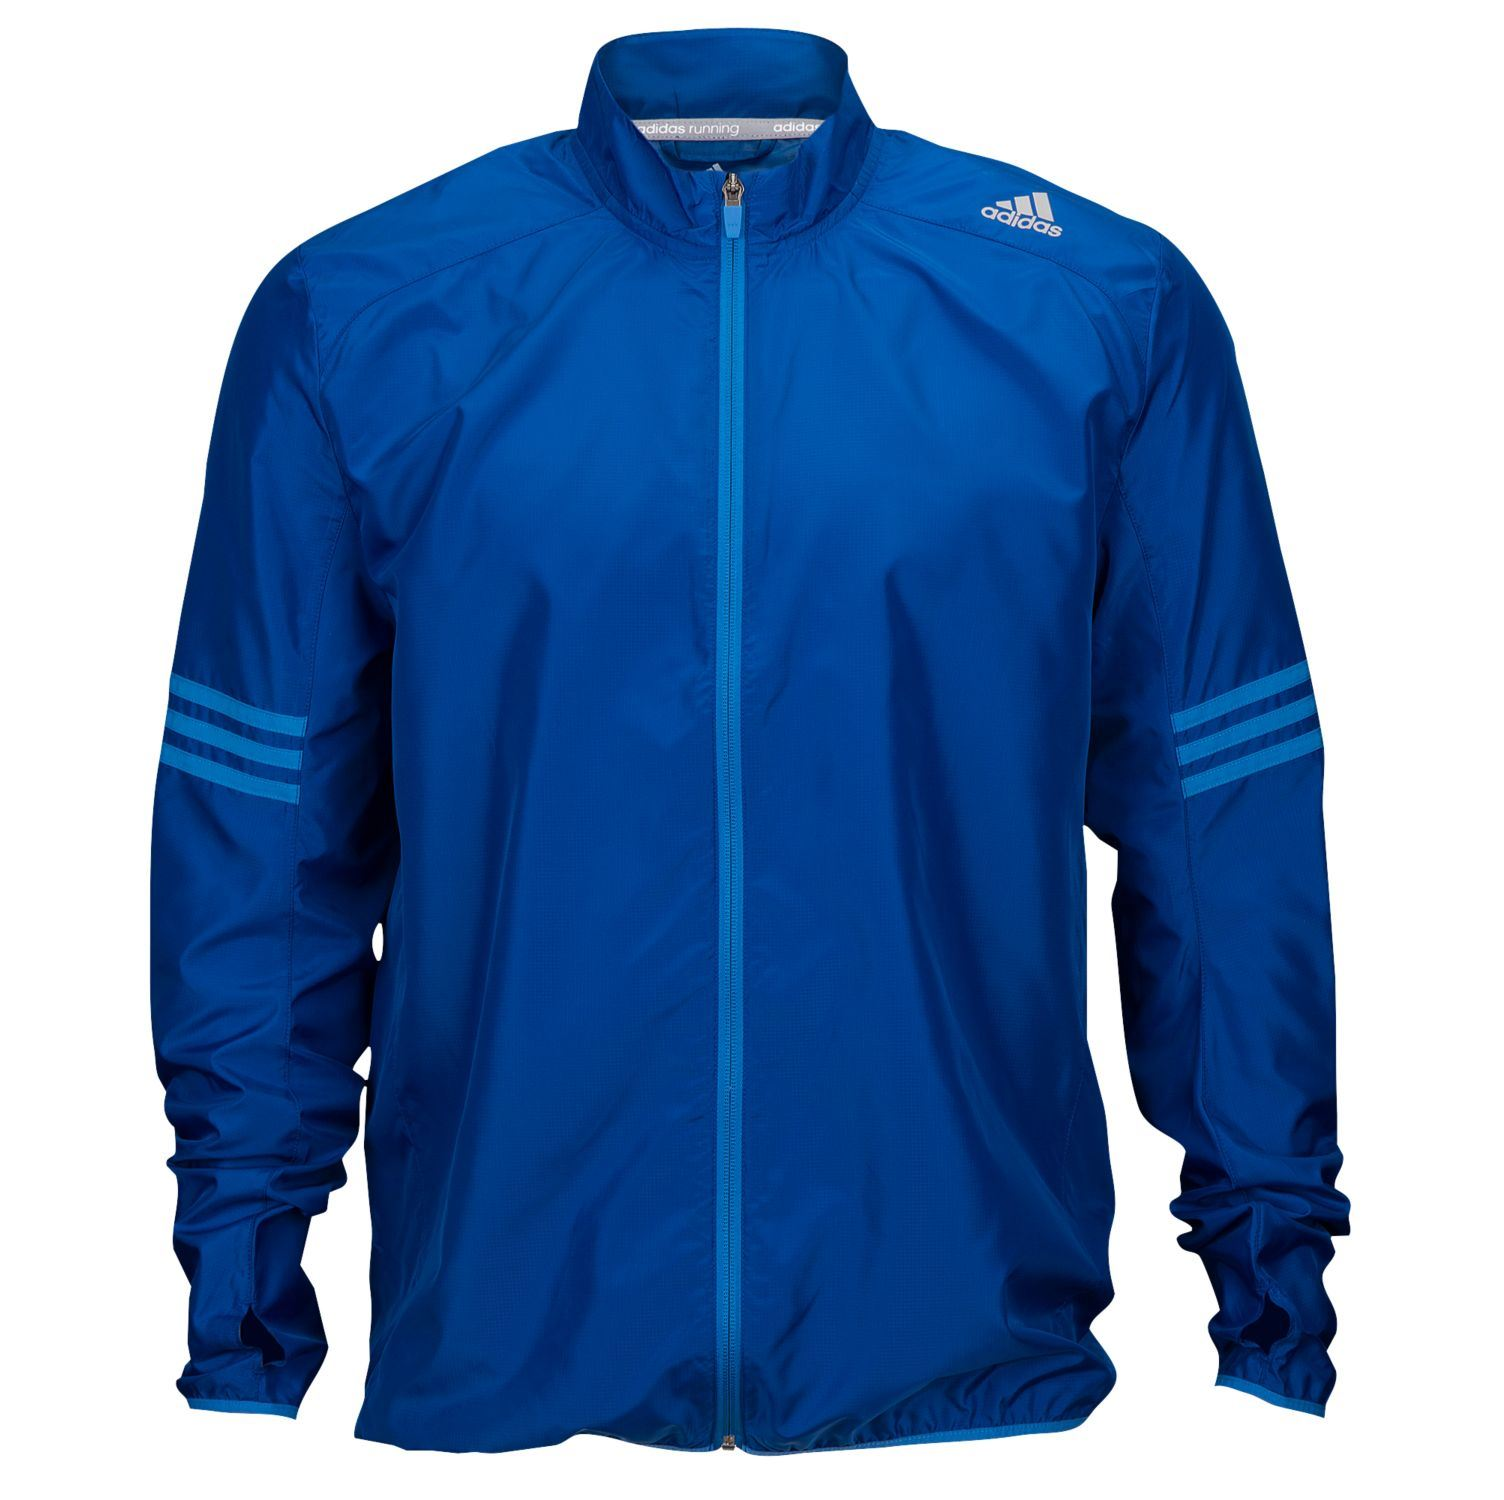 Details about adidas Response Wind Running Jacket Mens Blue Jogging Track Zip Top